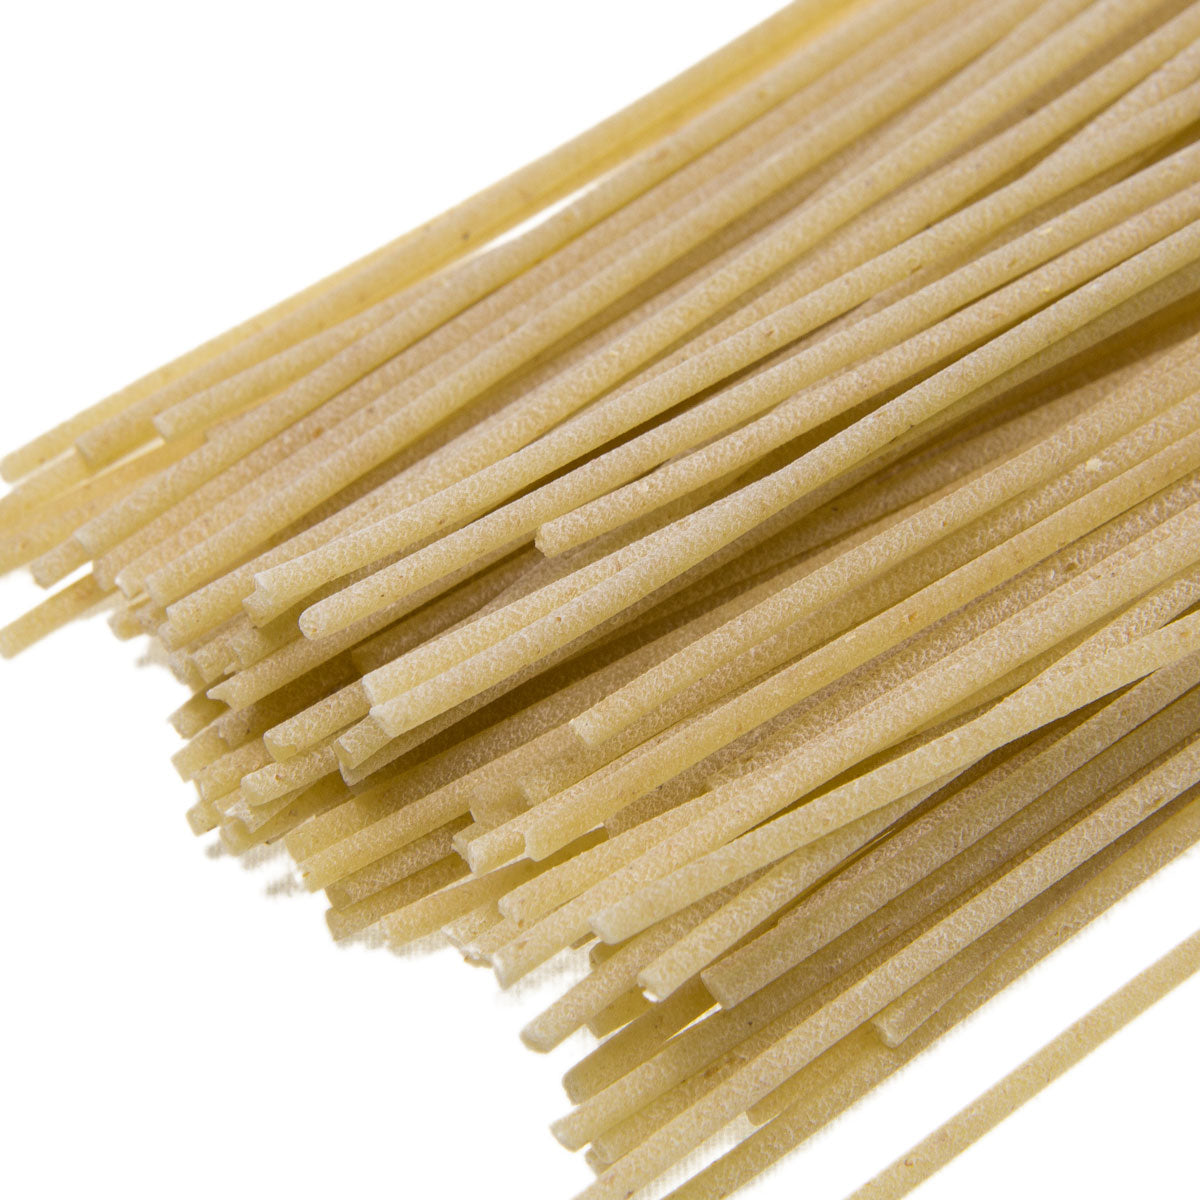 Agrozimi Spelt Spaghetti all-natural artisanal Greek pasta